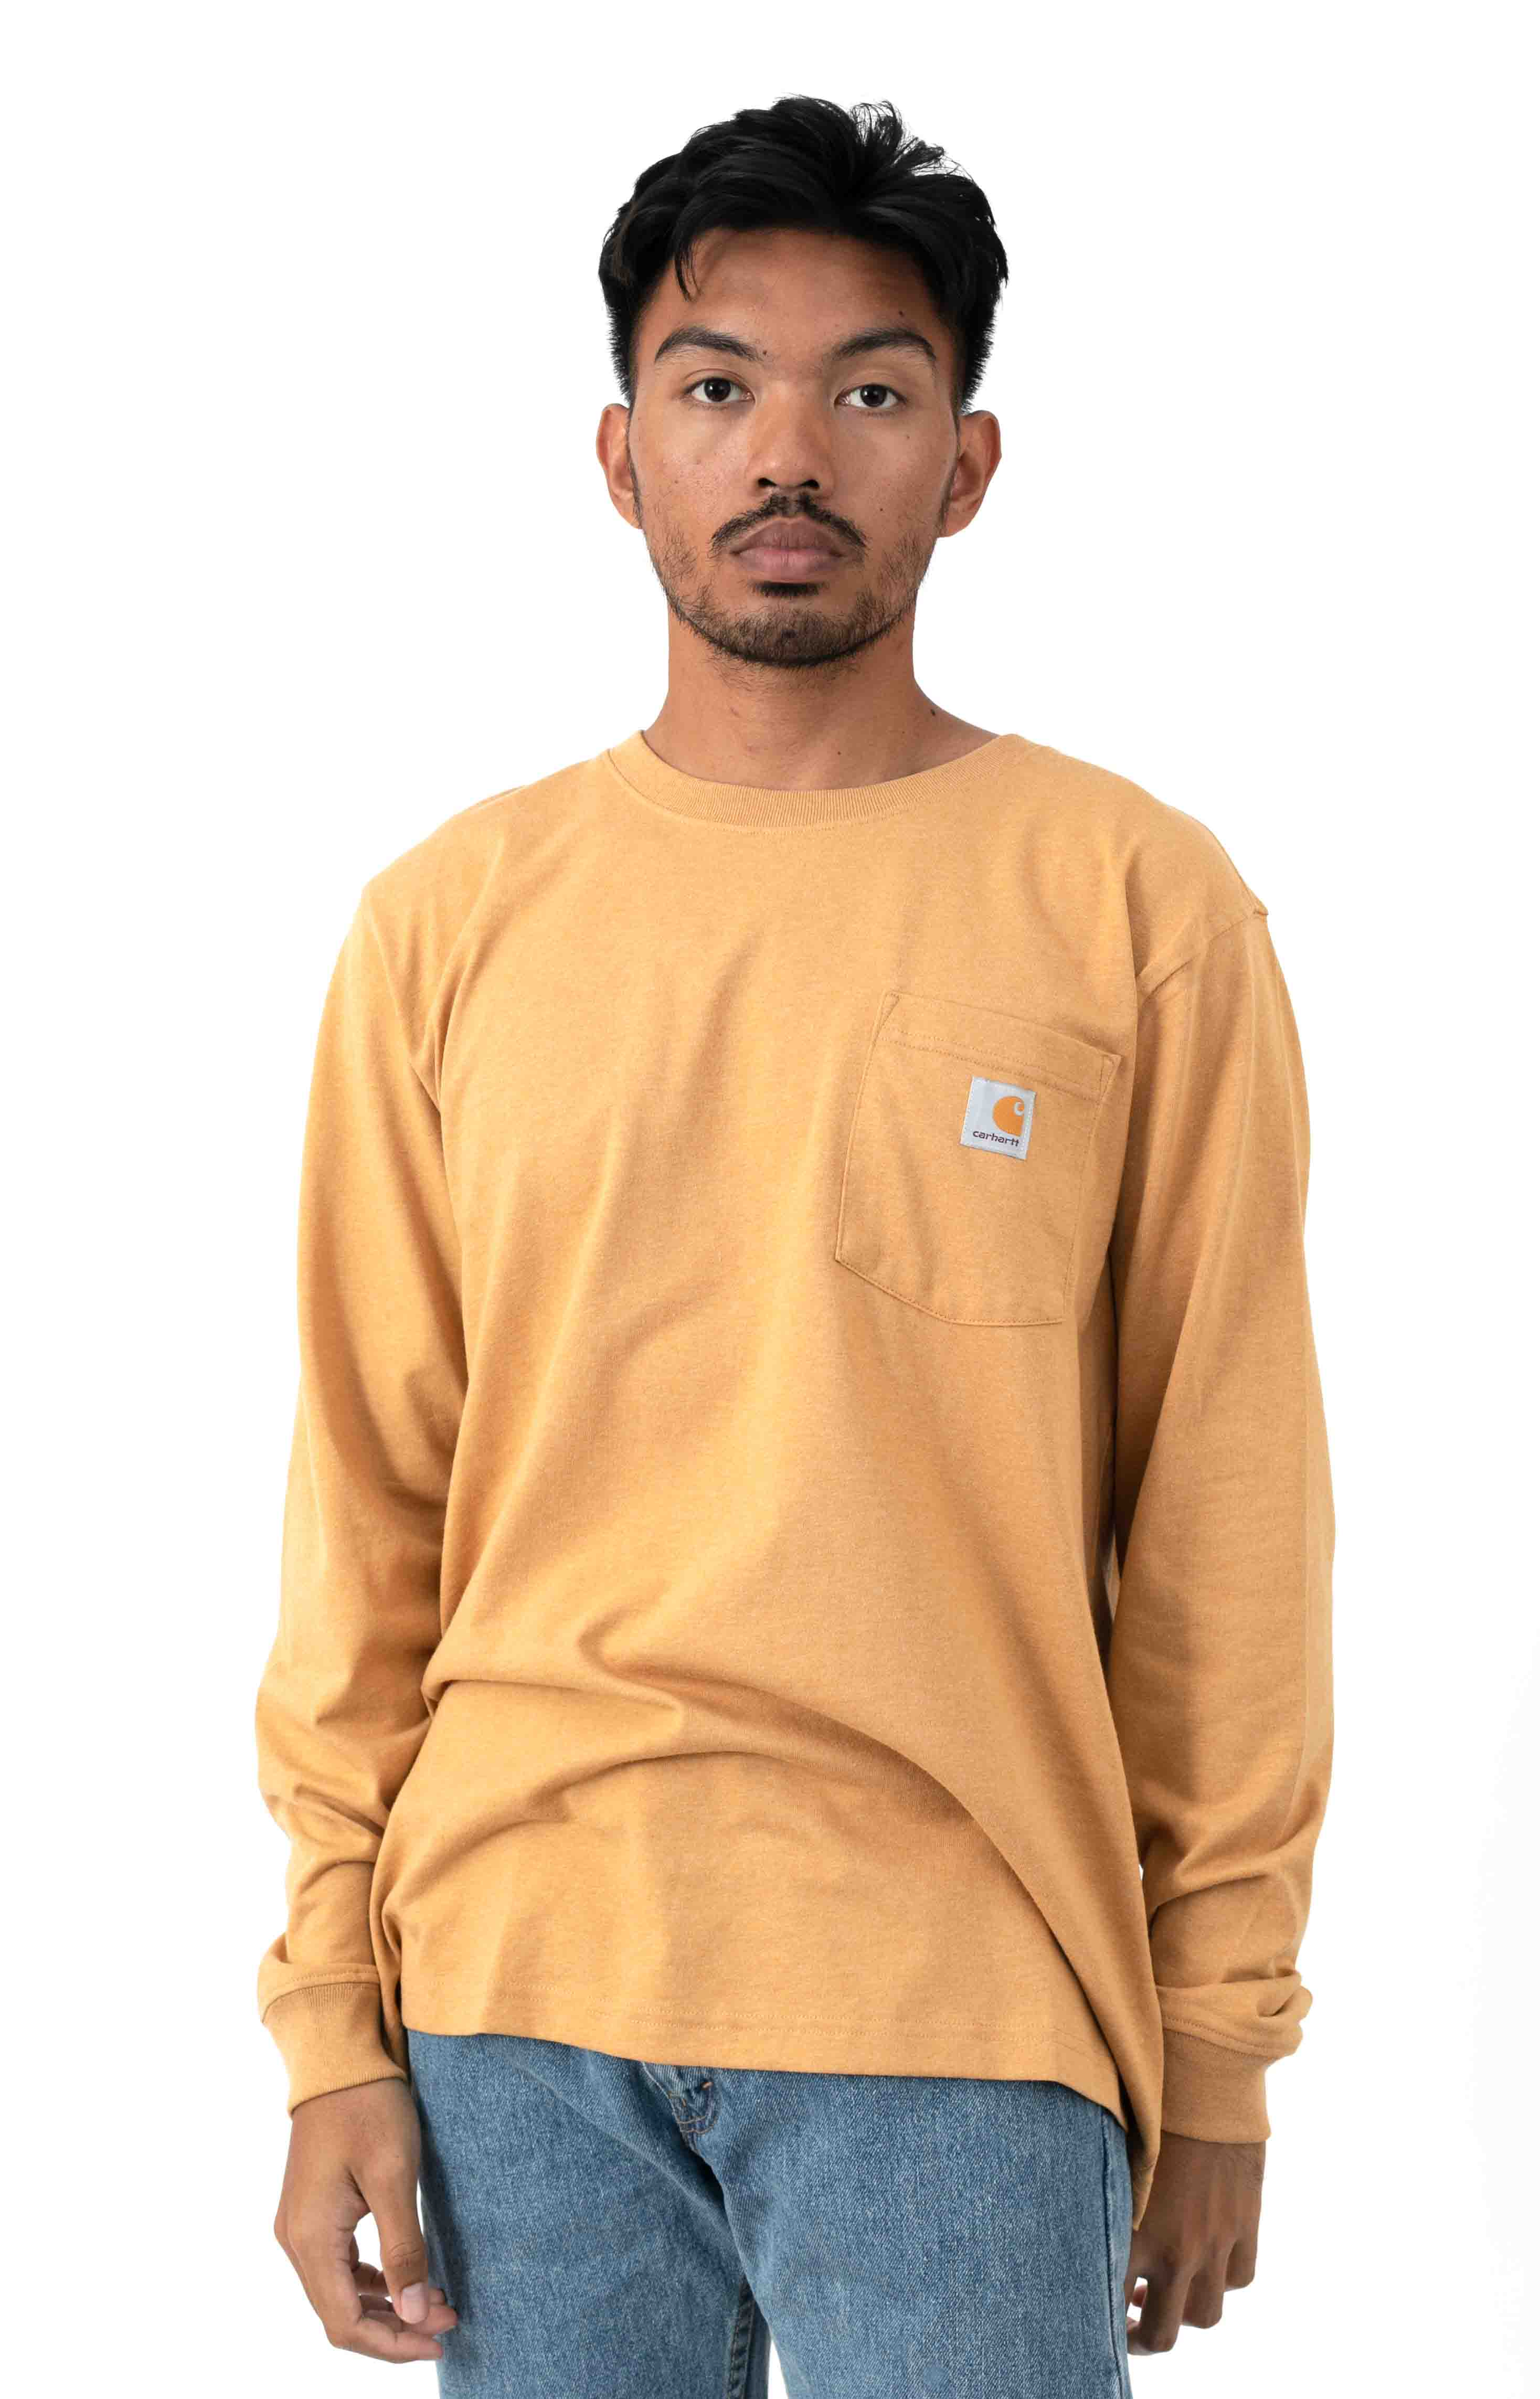 (104438) Relaxed Fit HW L/S Pocket Built For The Elements Graphic Shirt - Yellowstone Hthr 2